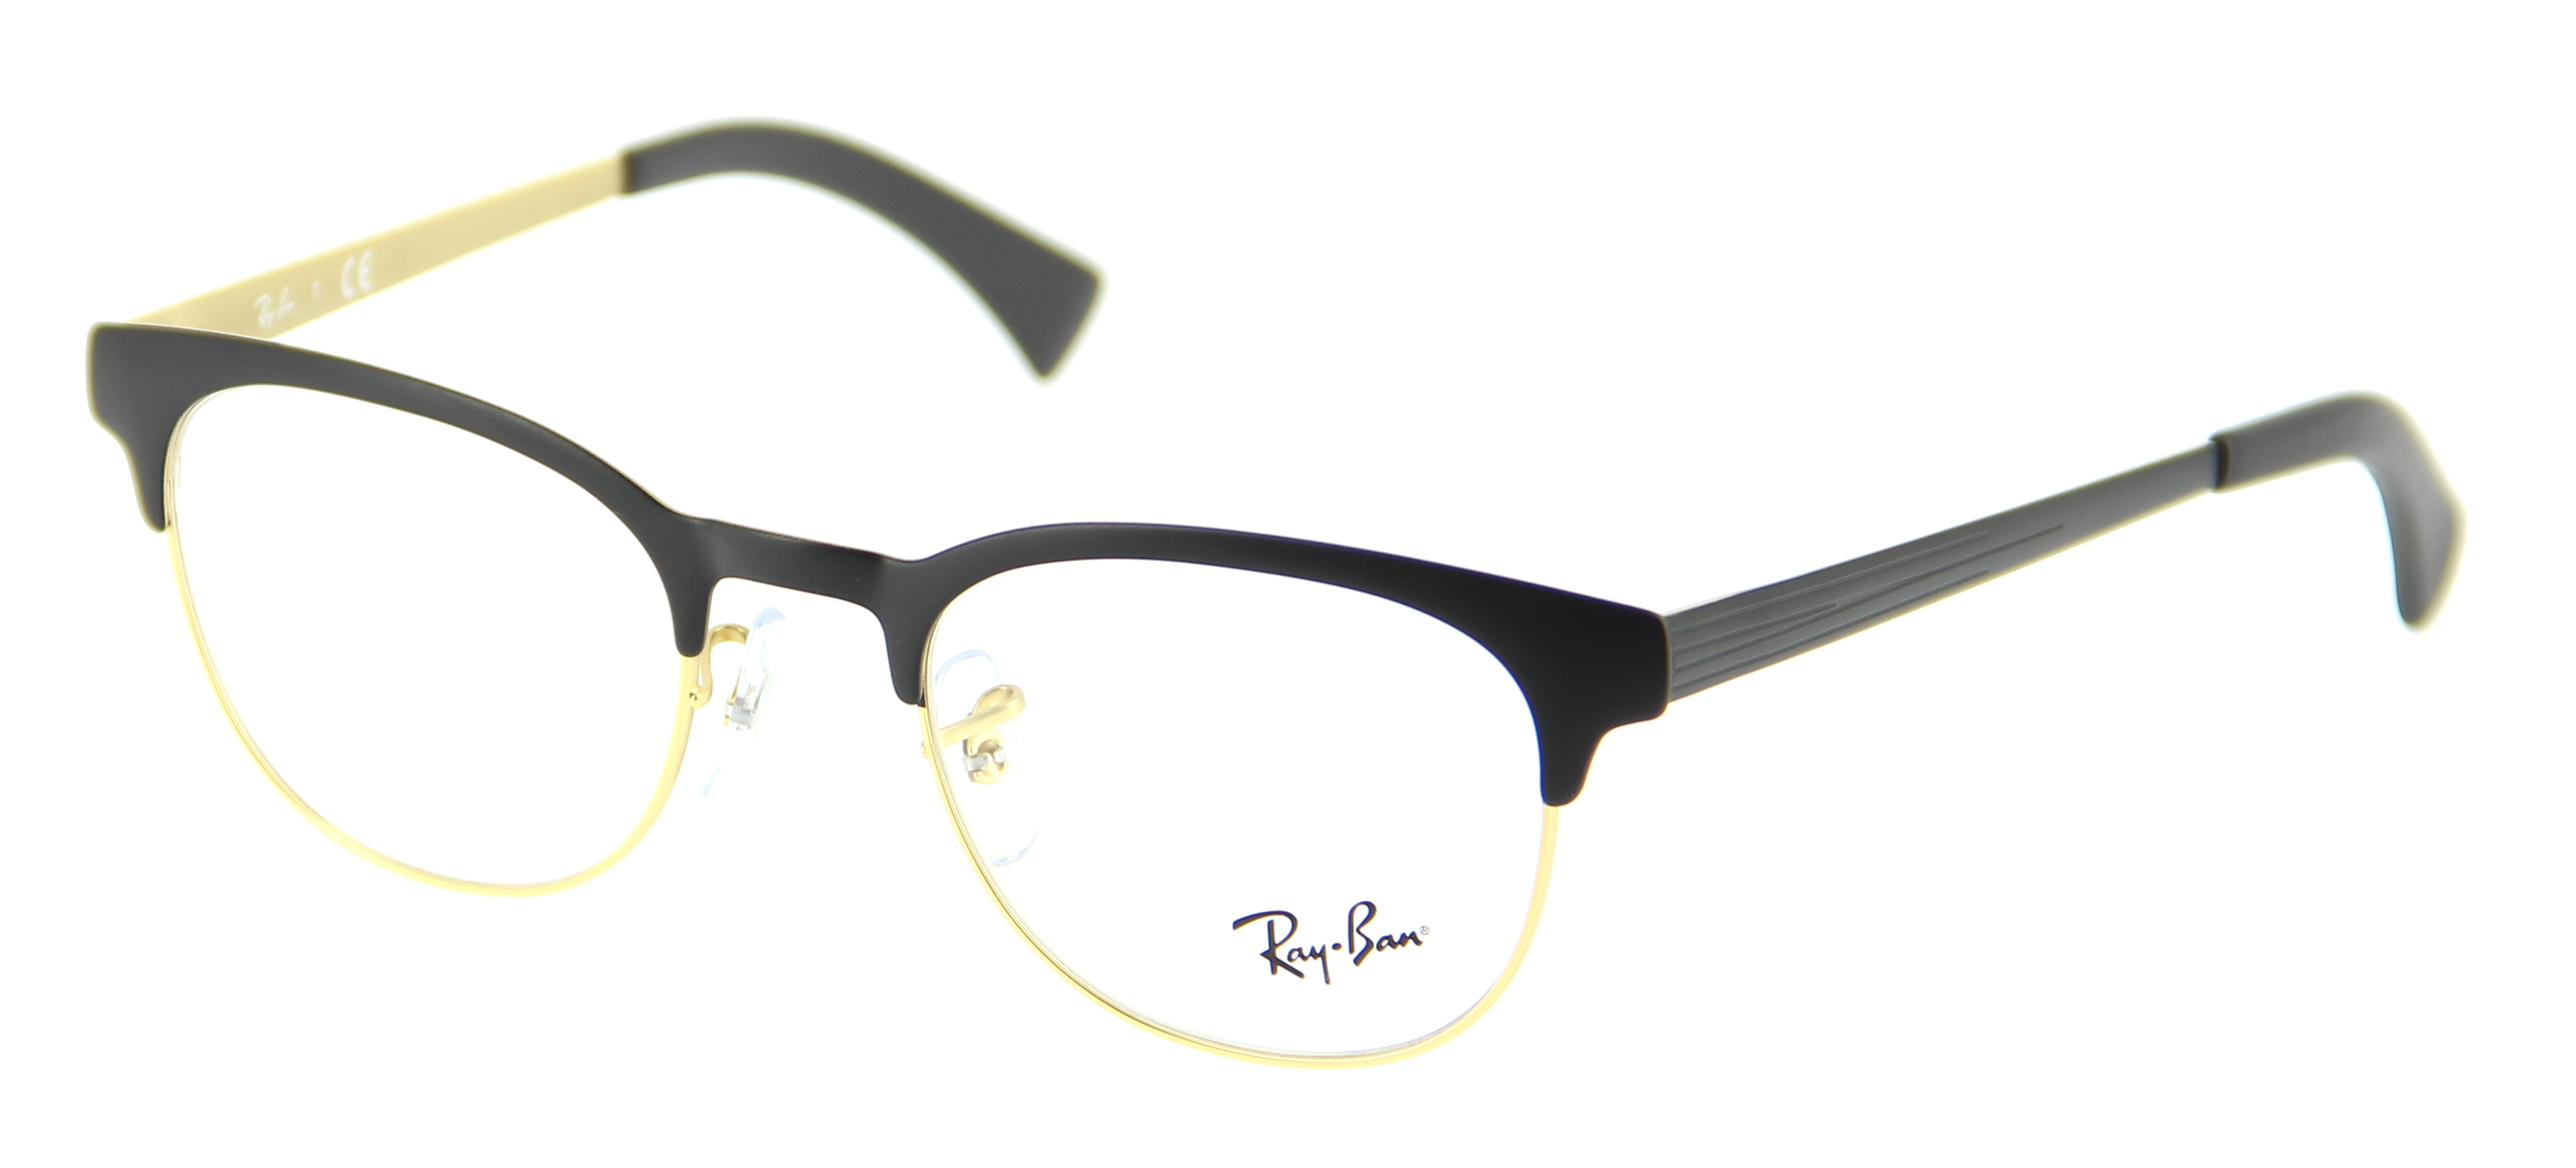 Optical Center Ray Ban Clubmaster « Heritage Malta 3080fd991cf3